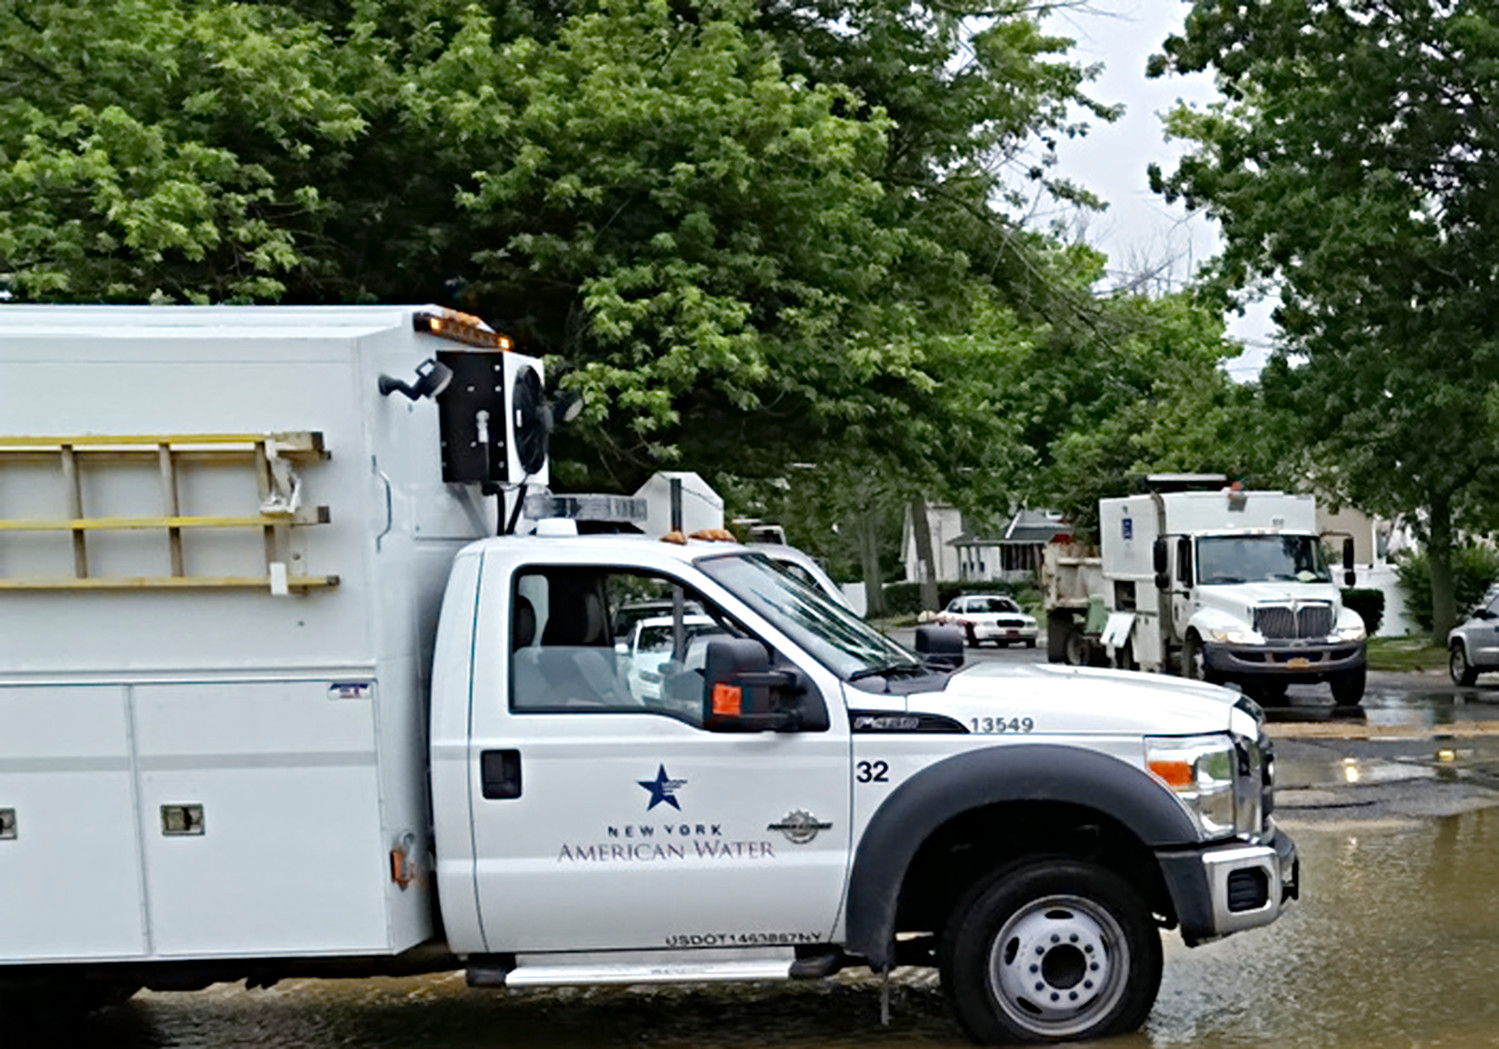 New York American Water will be replacing several water service lines throughout Baldwin, in an effort to help improve the community infrastructure.